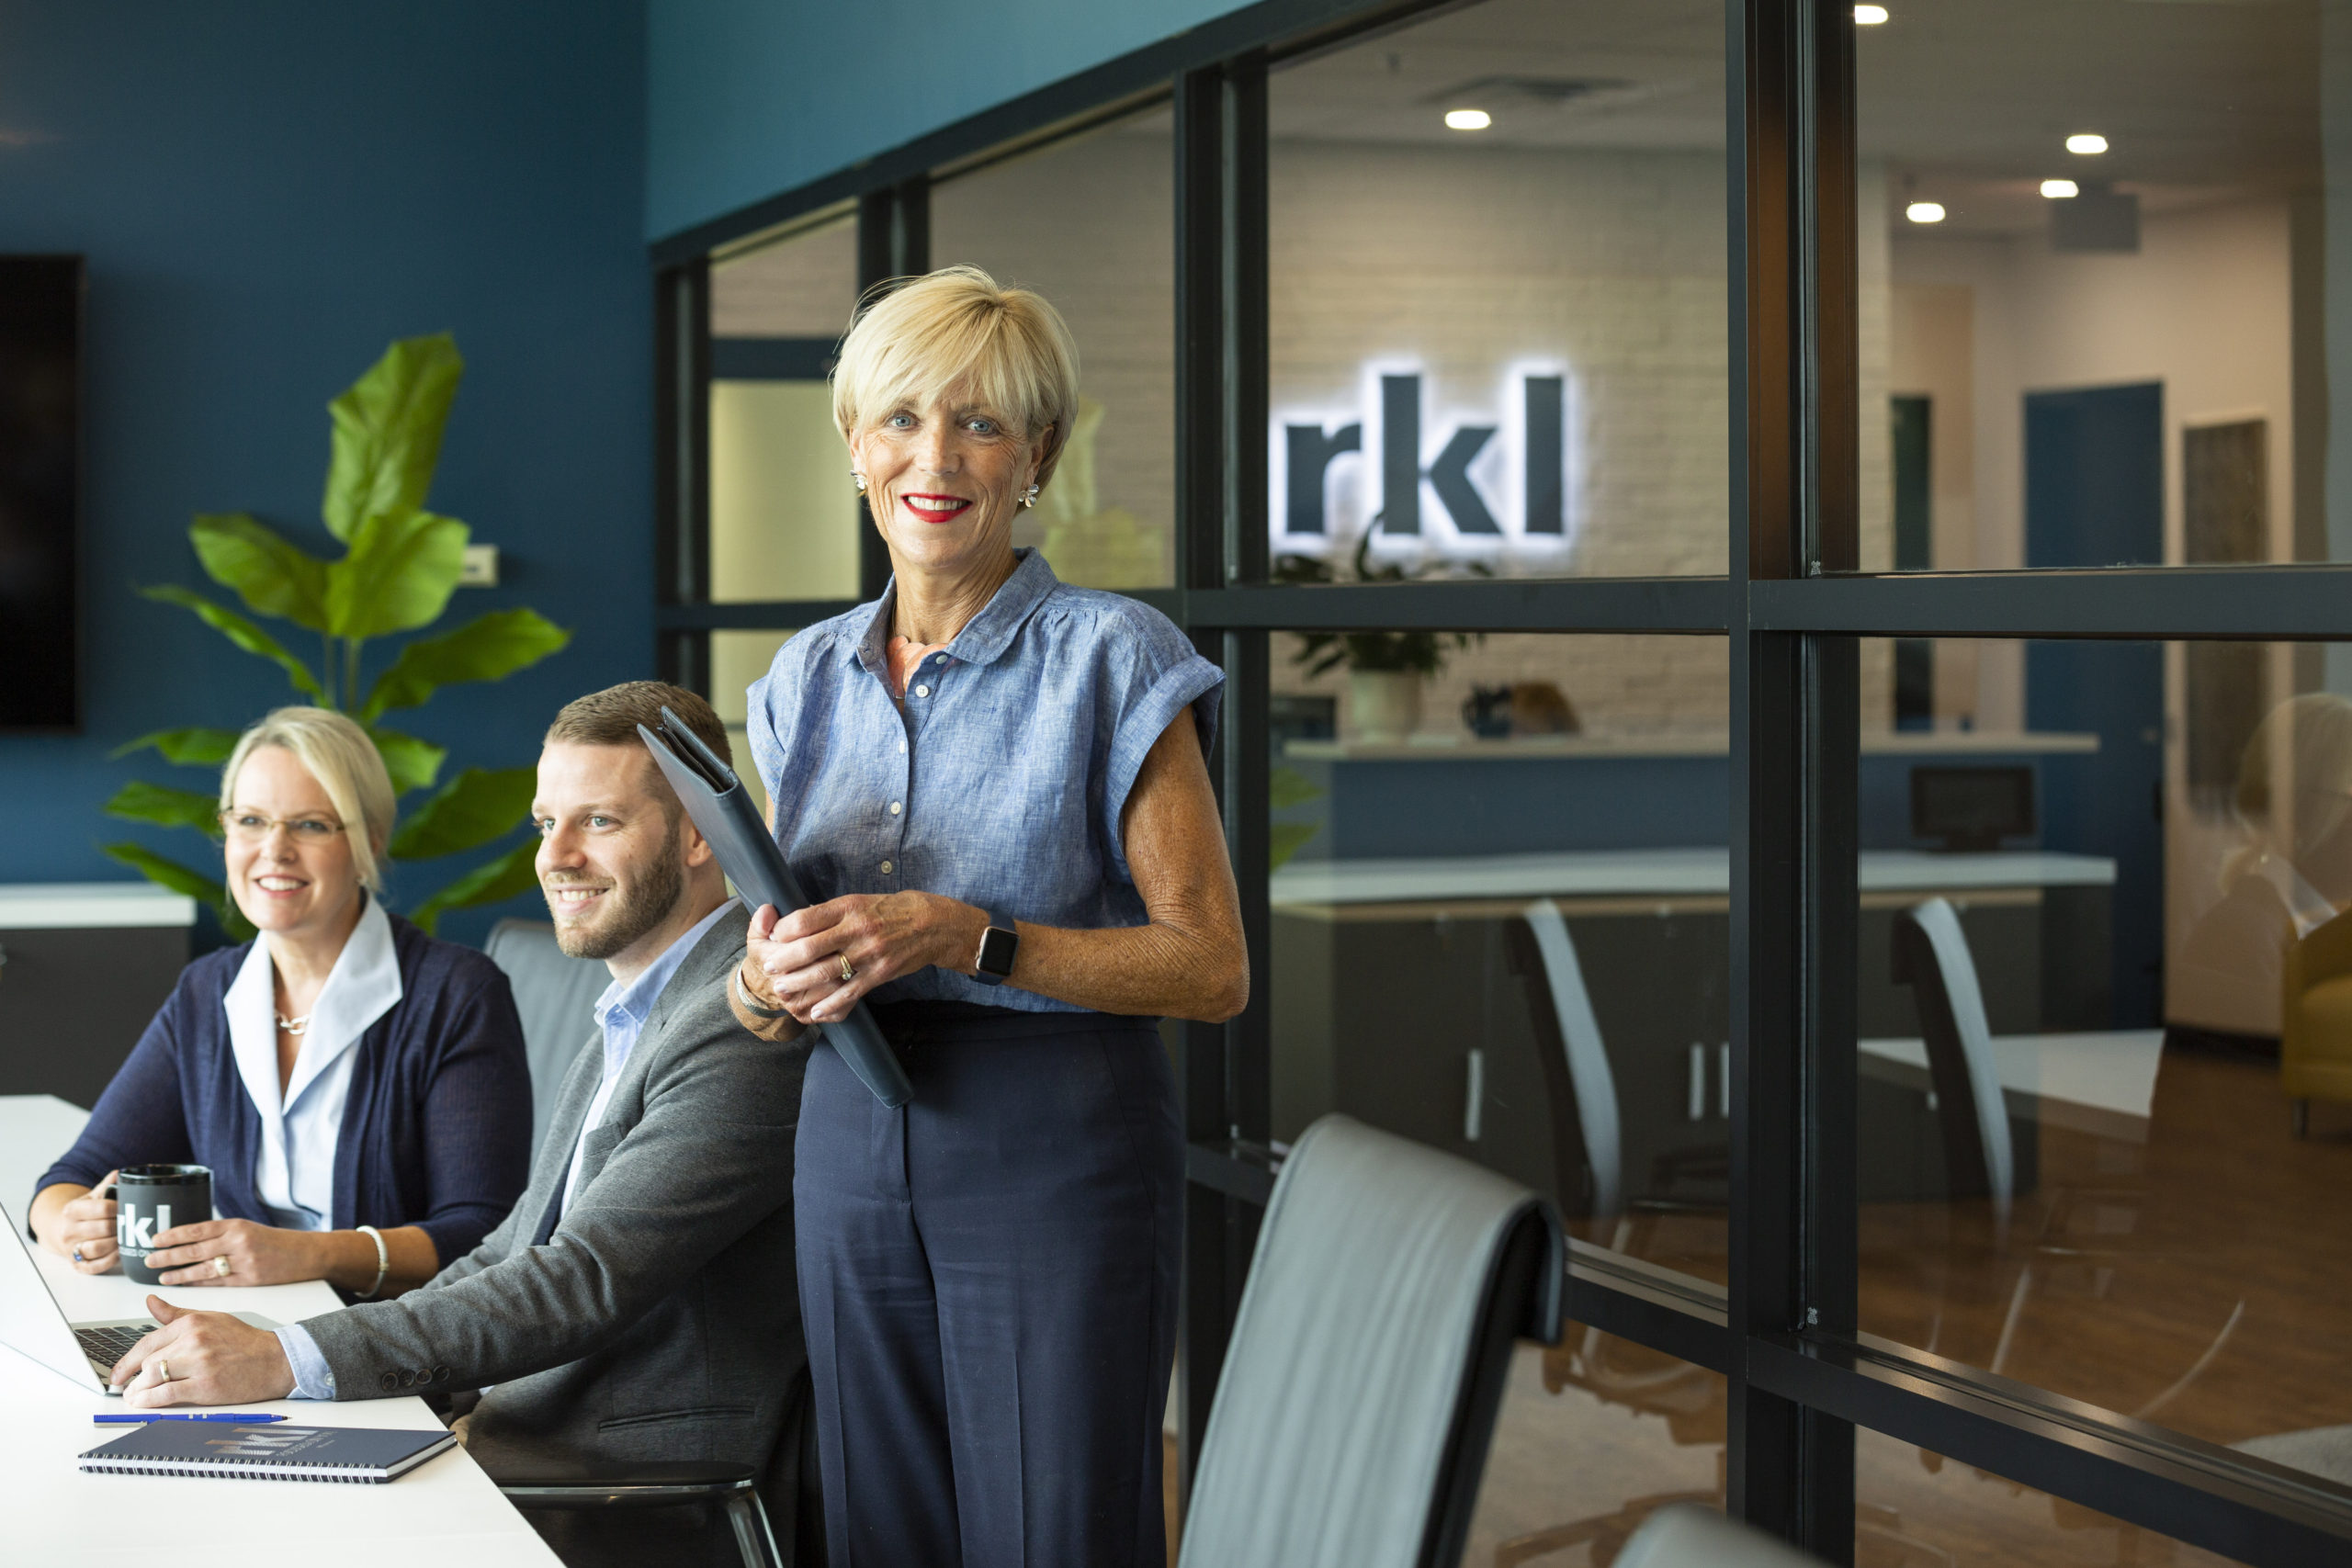 Local Consulting and Advisory Firm RKL Once Again Named One of State's Best Places to Work